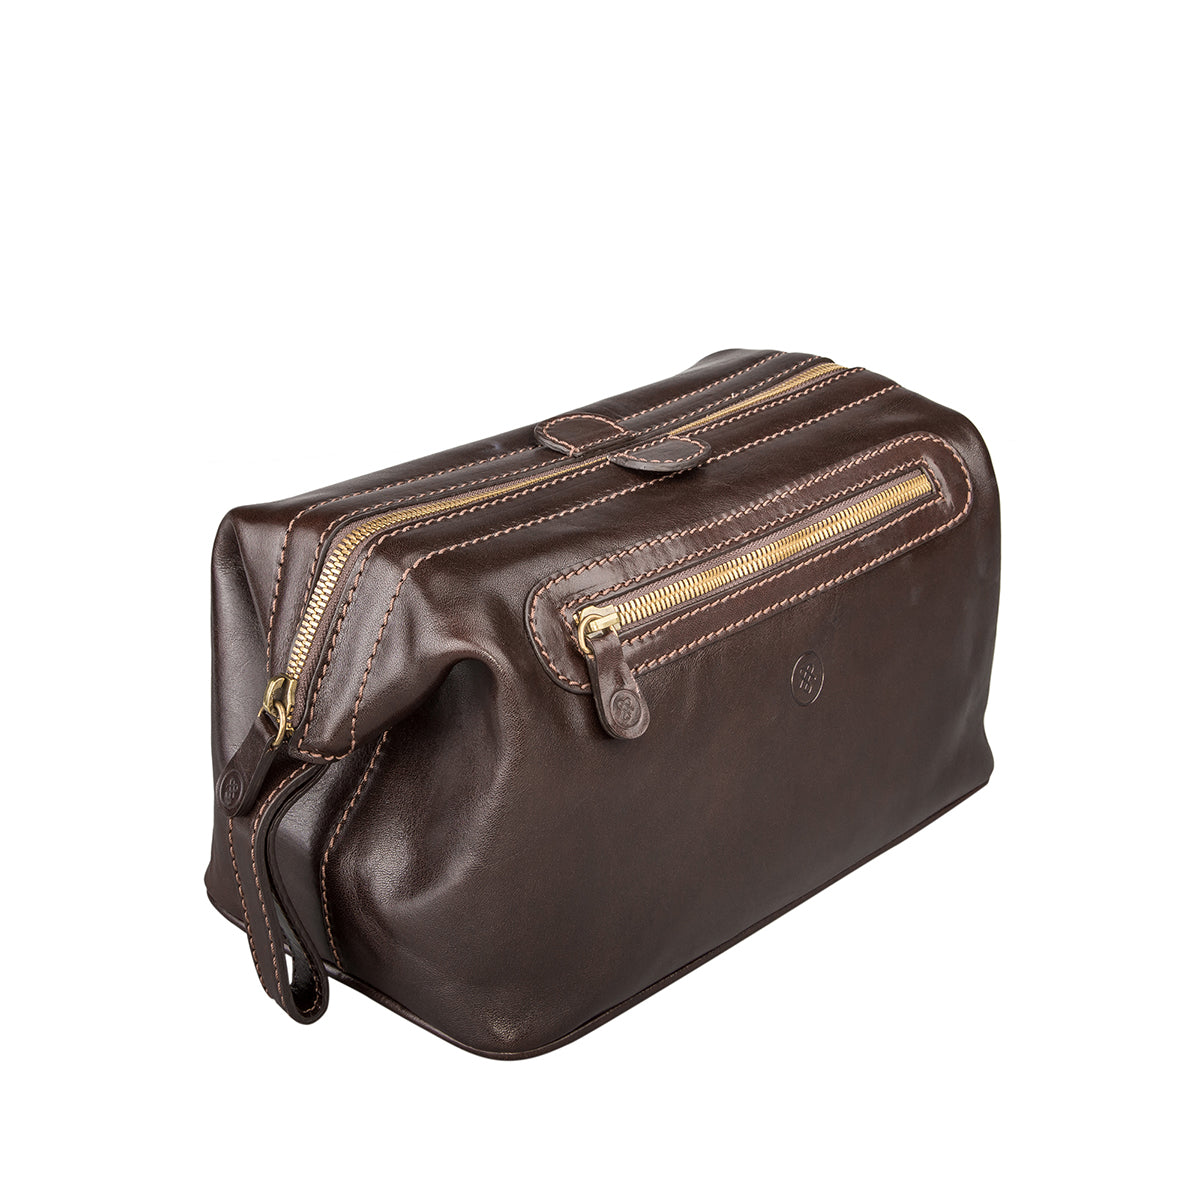 Image 2 of the 'Duno L'  Brown Veg-Tanned Leather Wash Bag